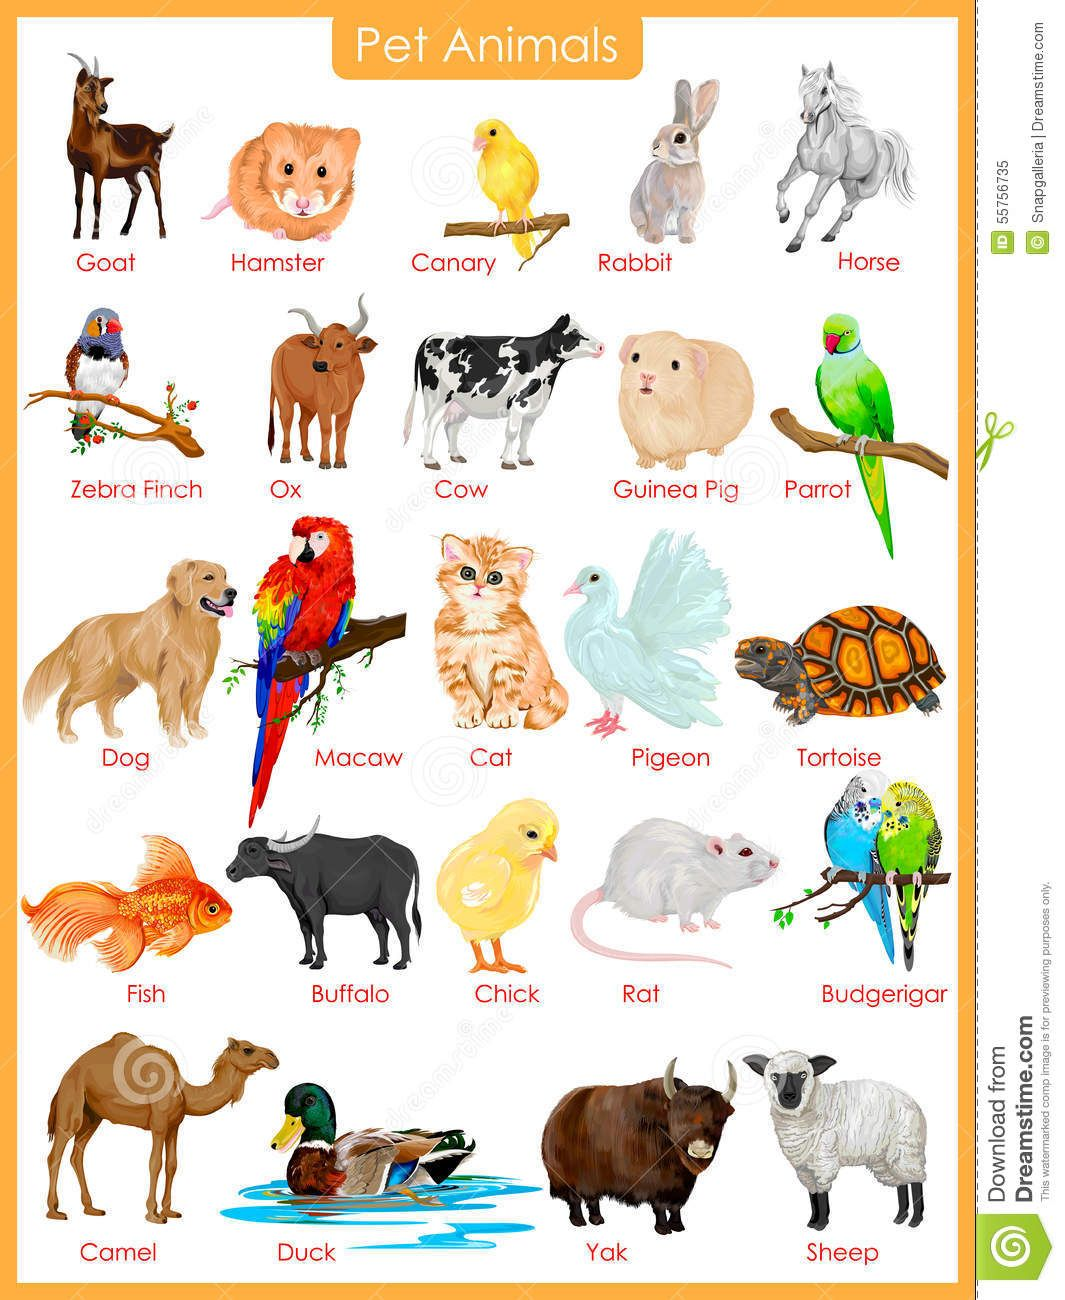 Image Result For Pet Animals Pictures